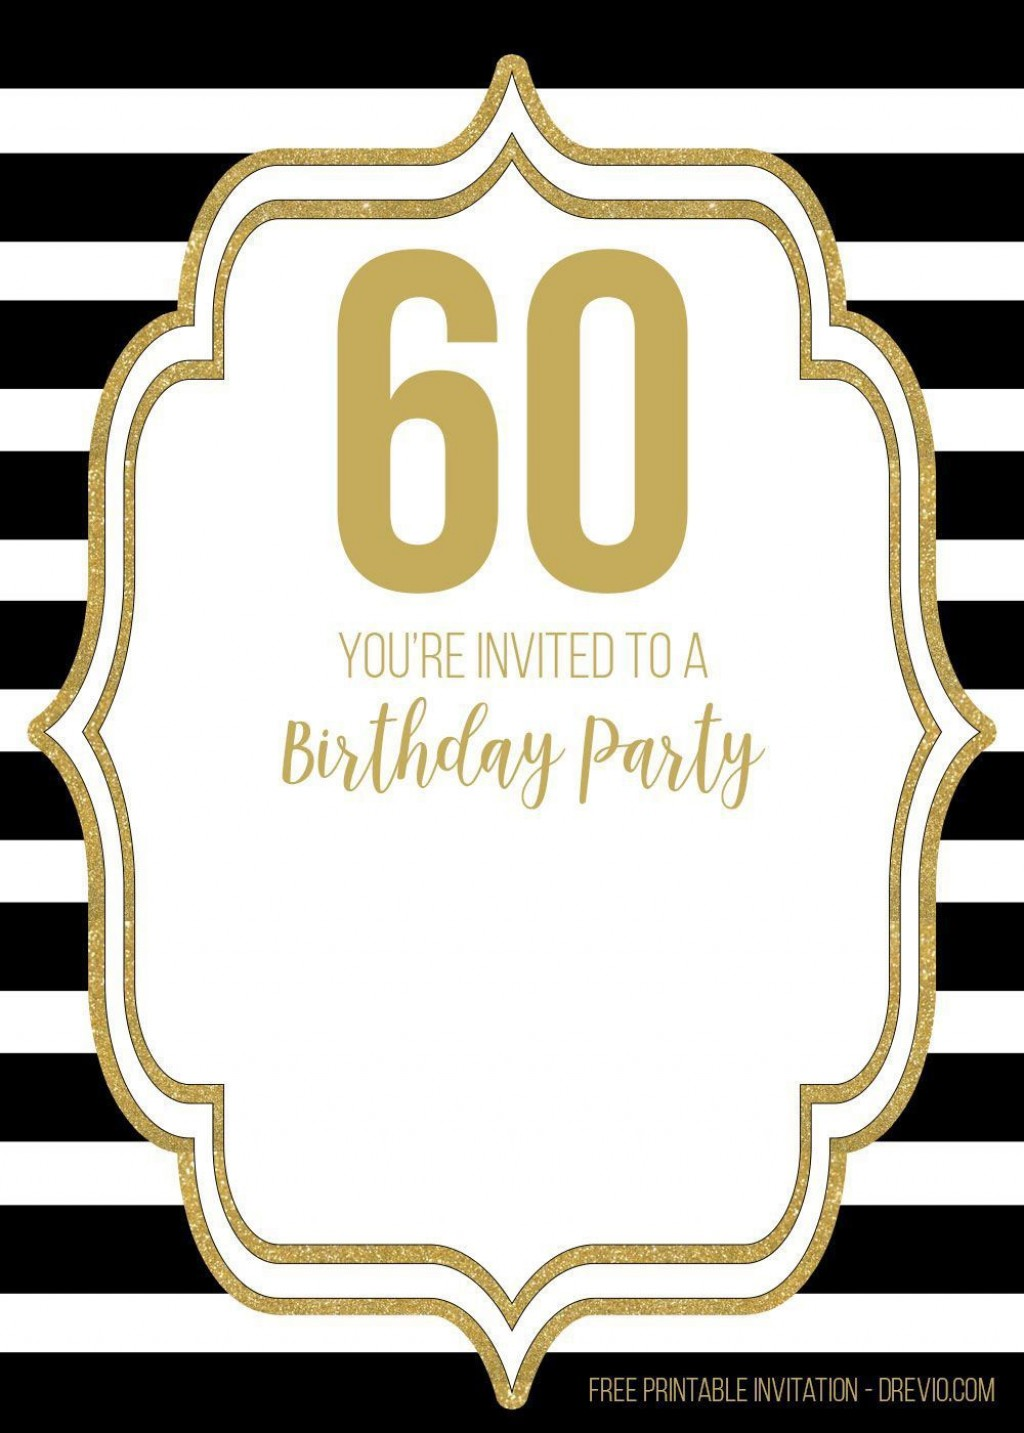 007 Unusual 60 Birthday Invite Template High Definition  Templates 60th Printable FreeLarge